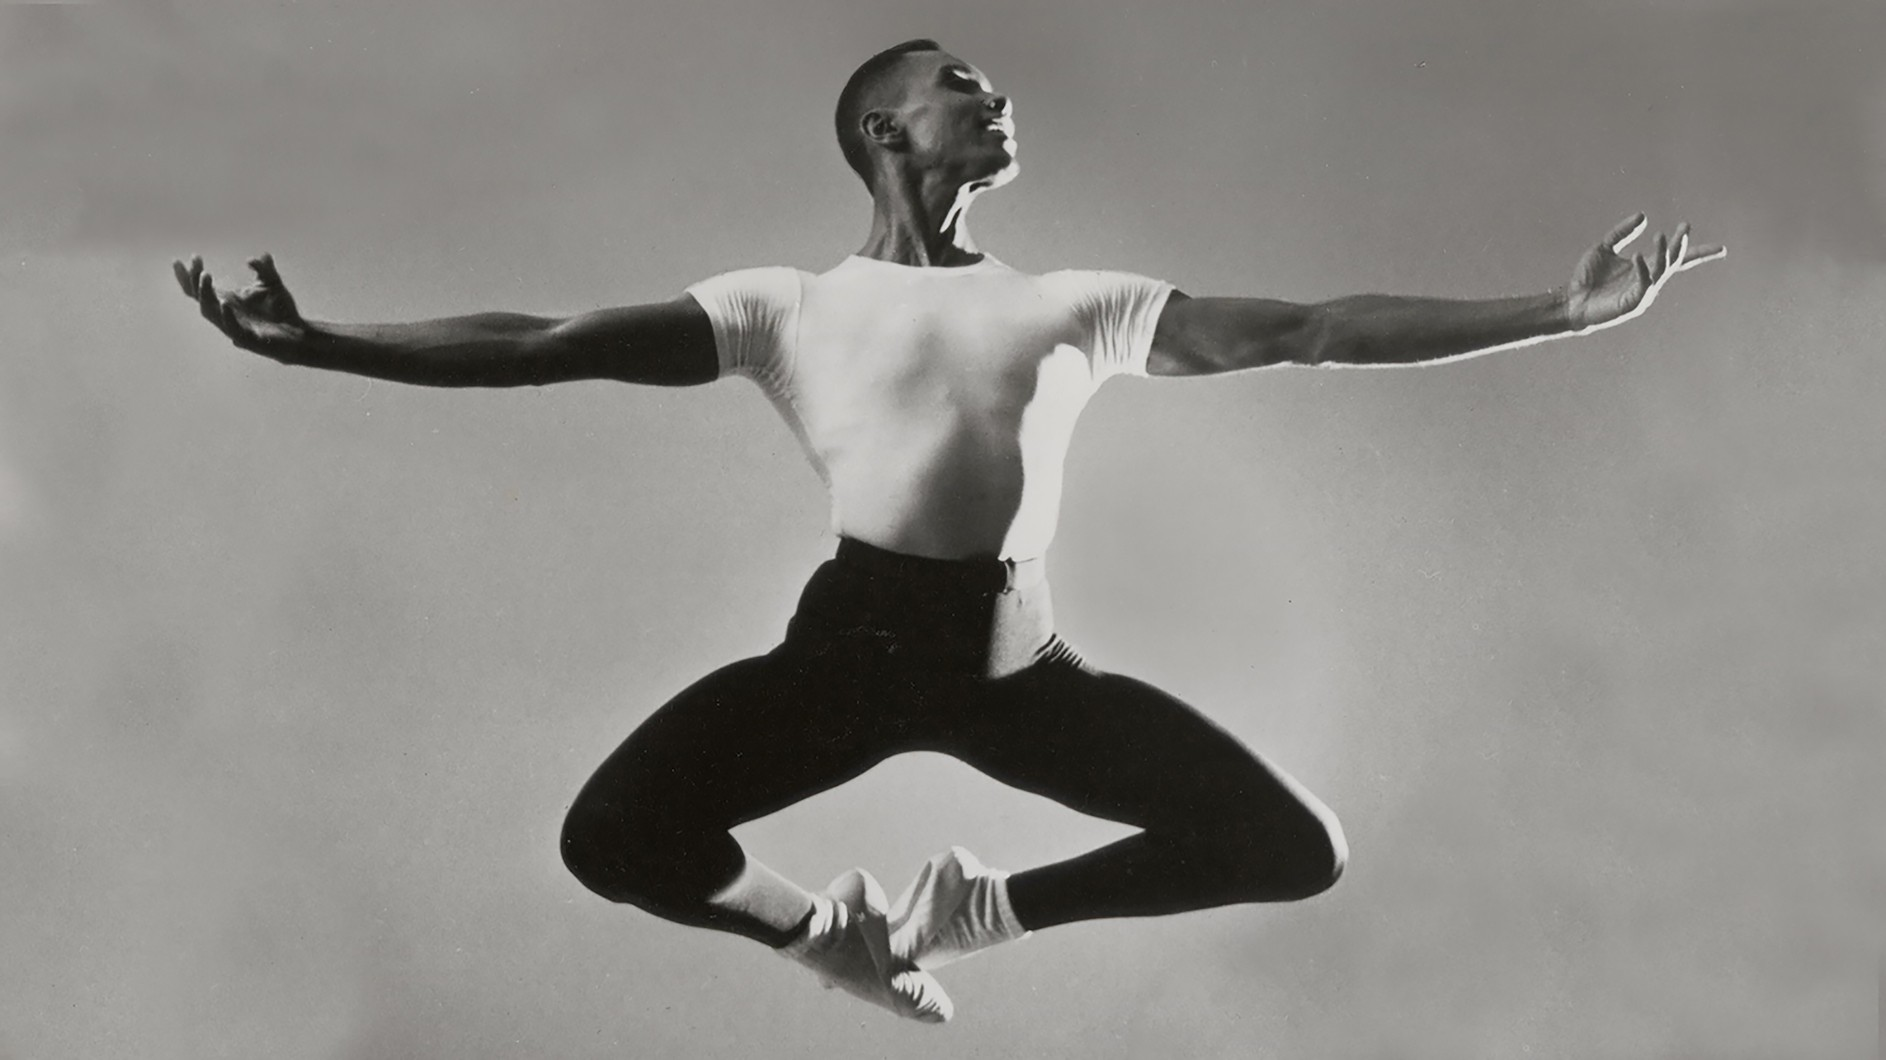 Black and white photo of man dancing - leaping in air